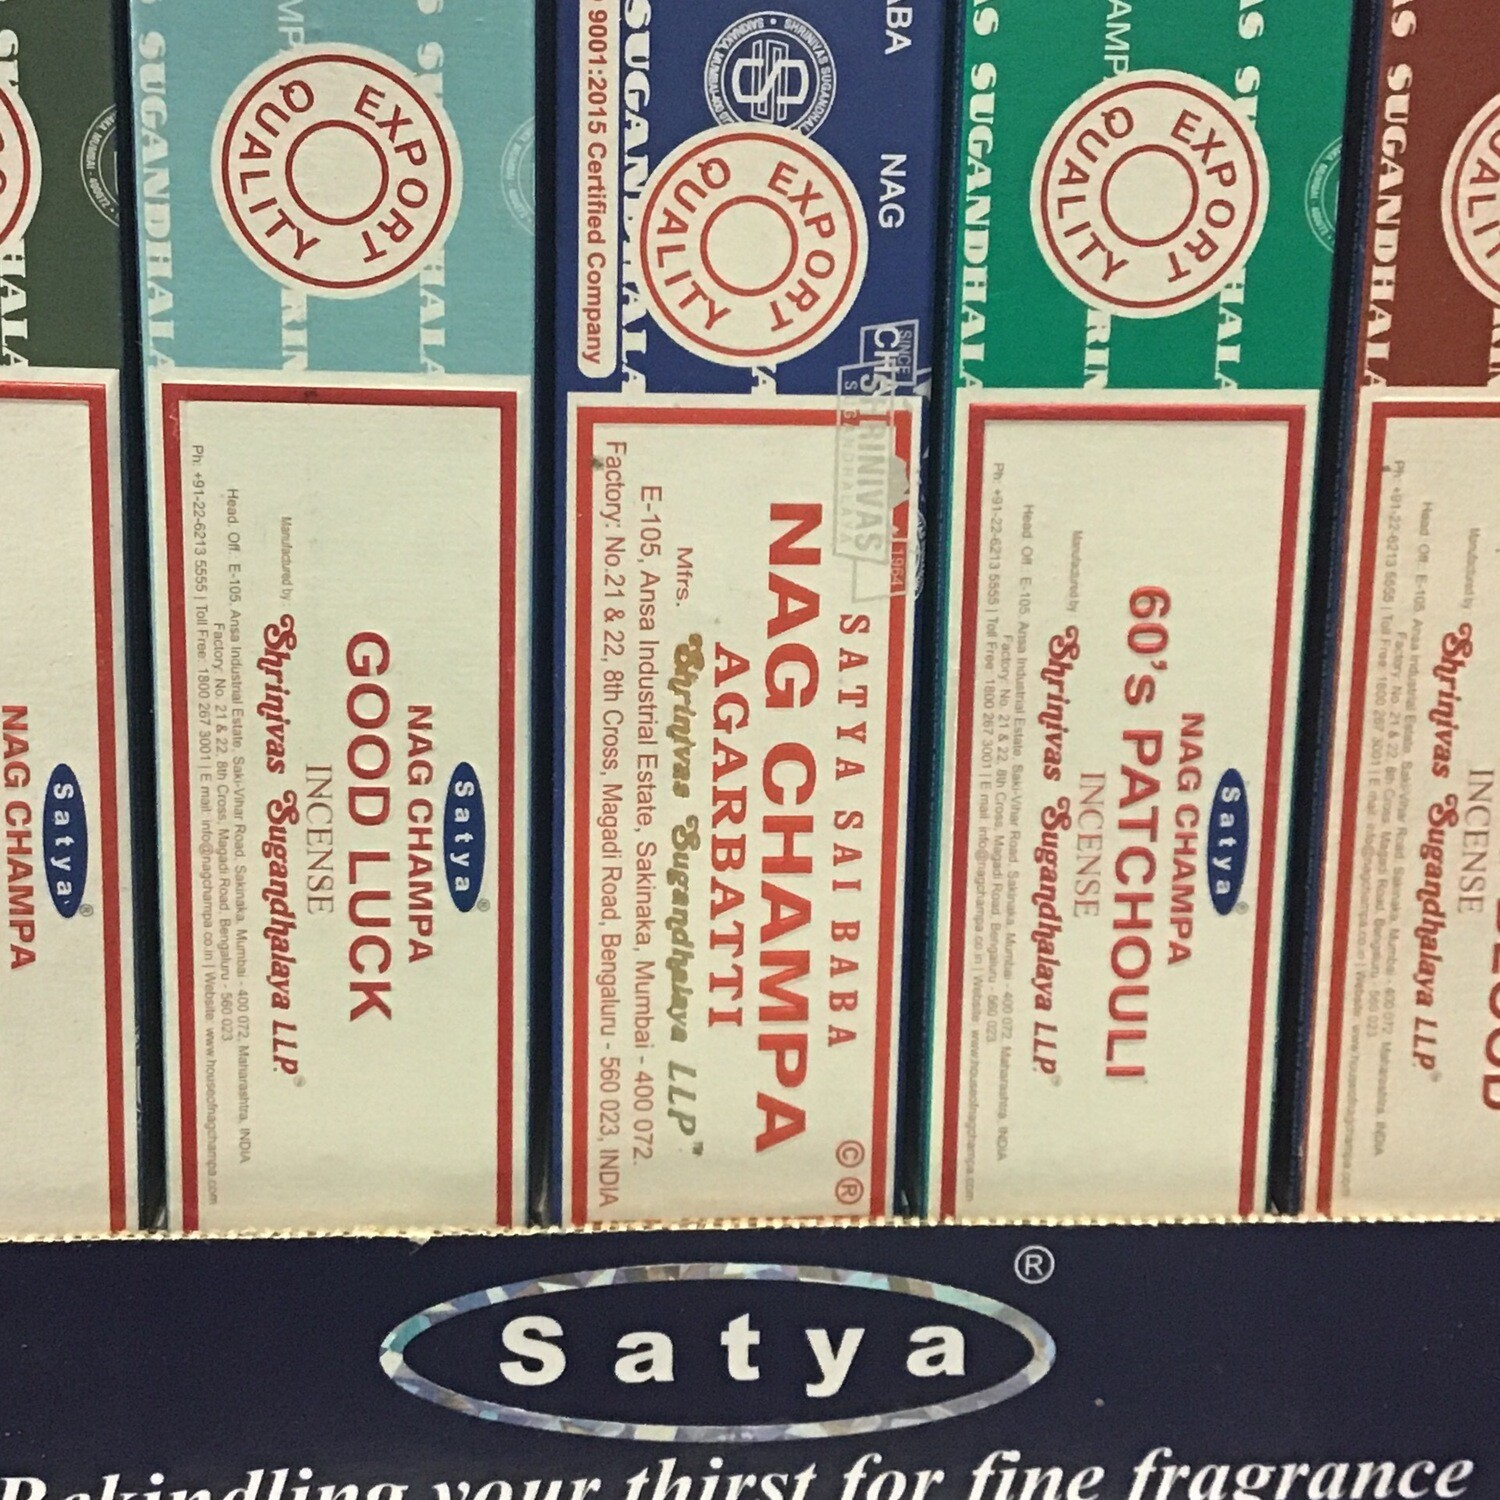 Satya incense 15g Boxes